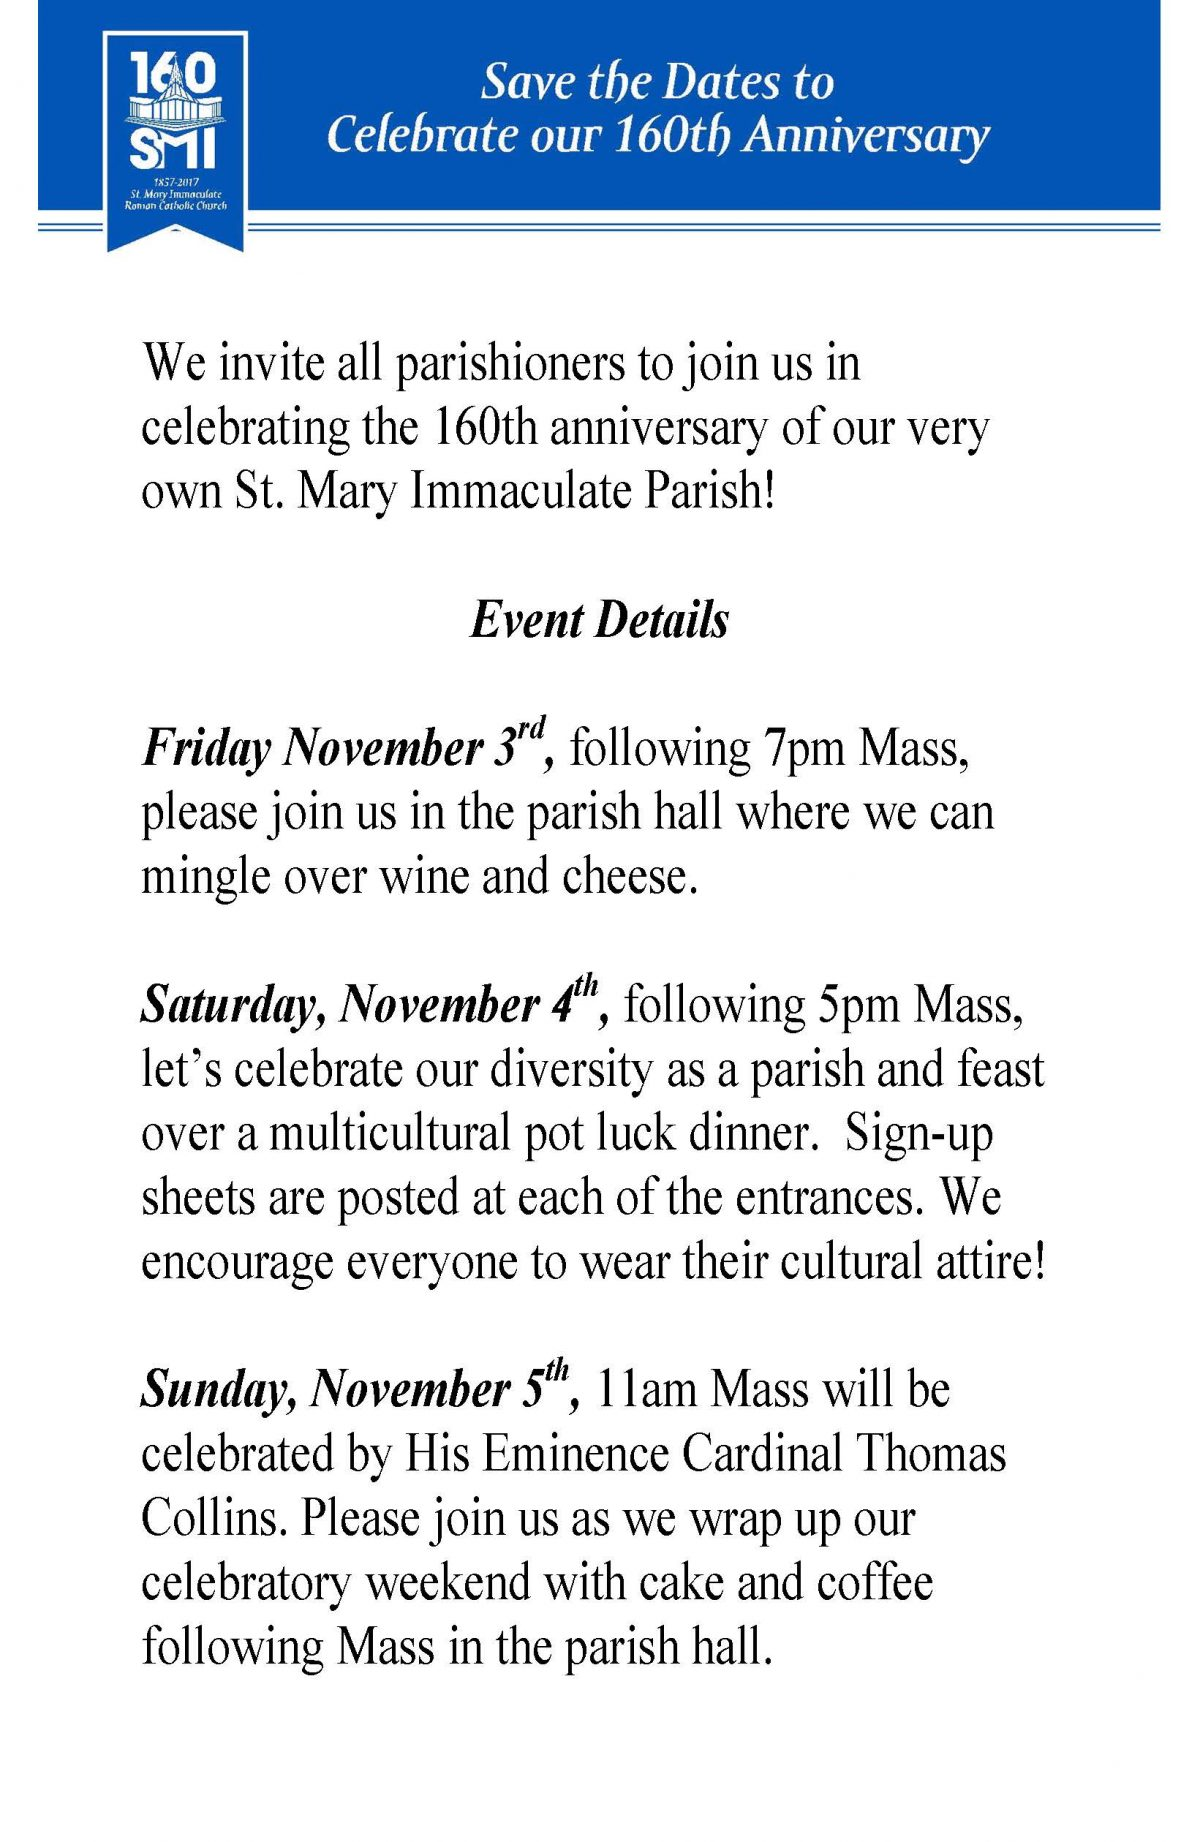 Join us in celebrating the 160th anniversary of our very own St. Mary Immaculate Parish!